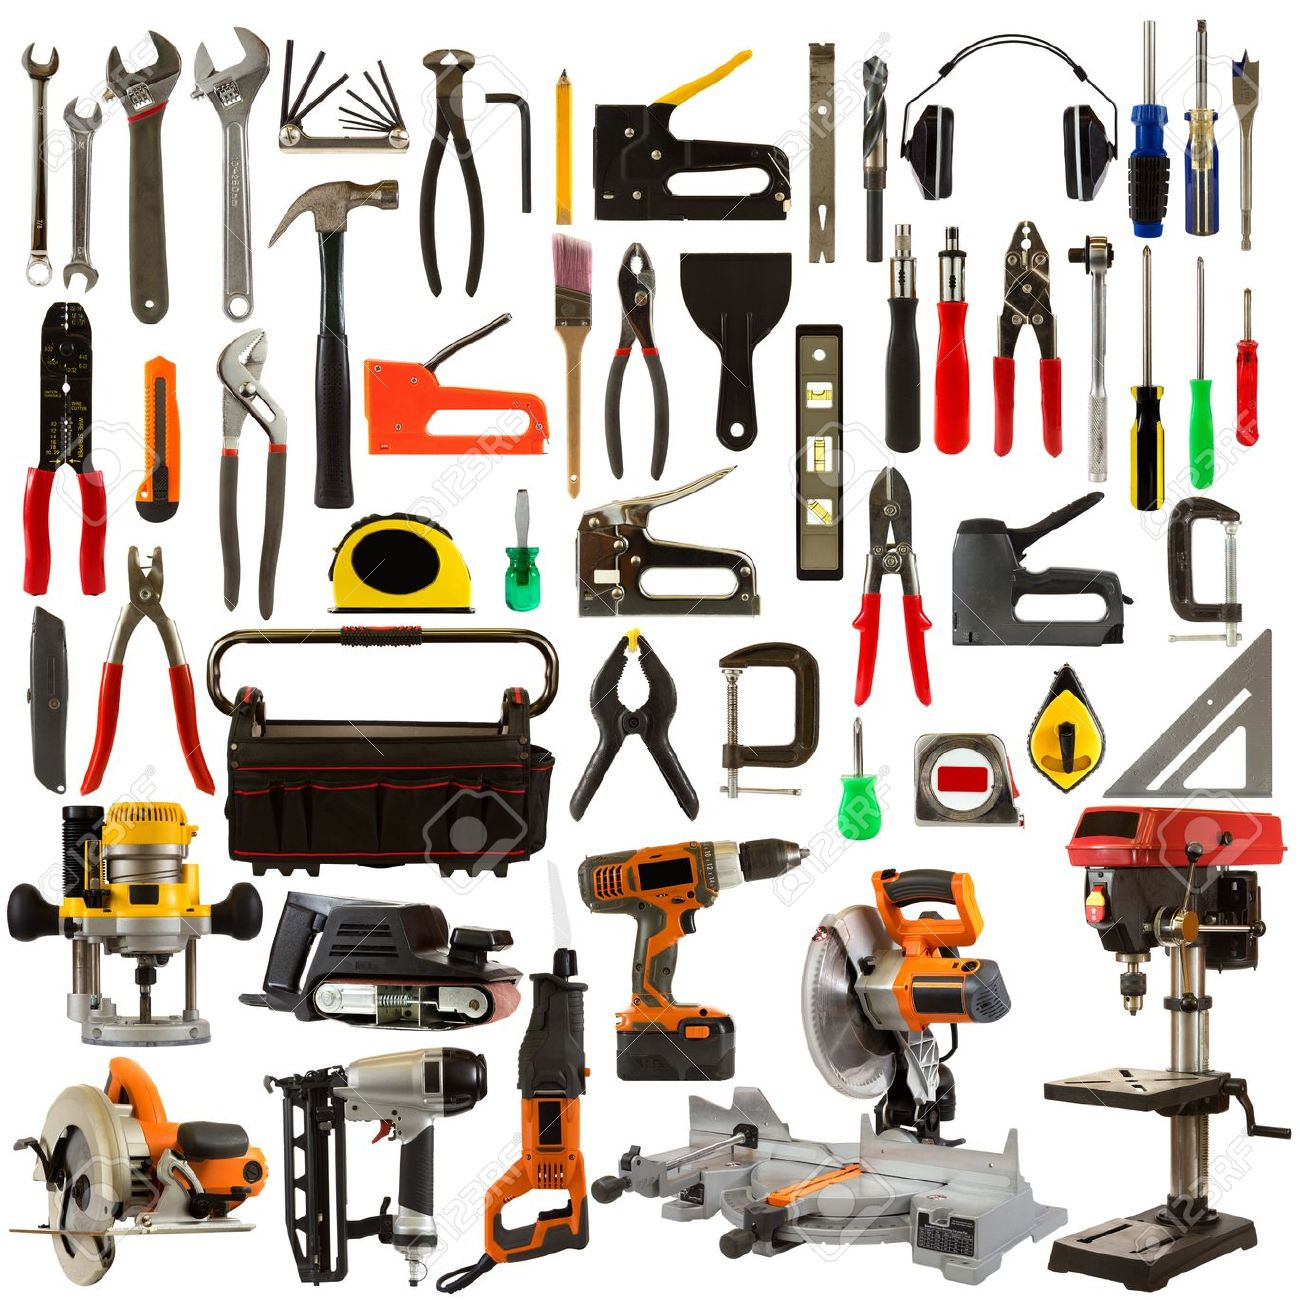 Tool collage isolated on a white background depicting carpentry and construction tools. Stock Photo - 14506627